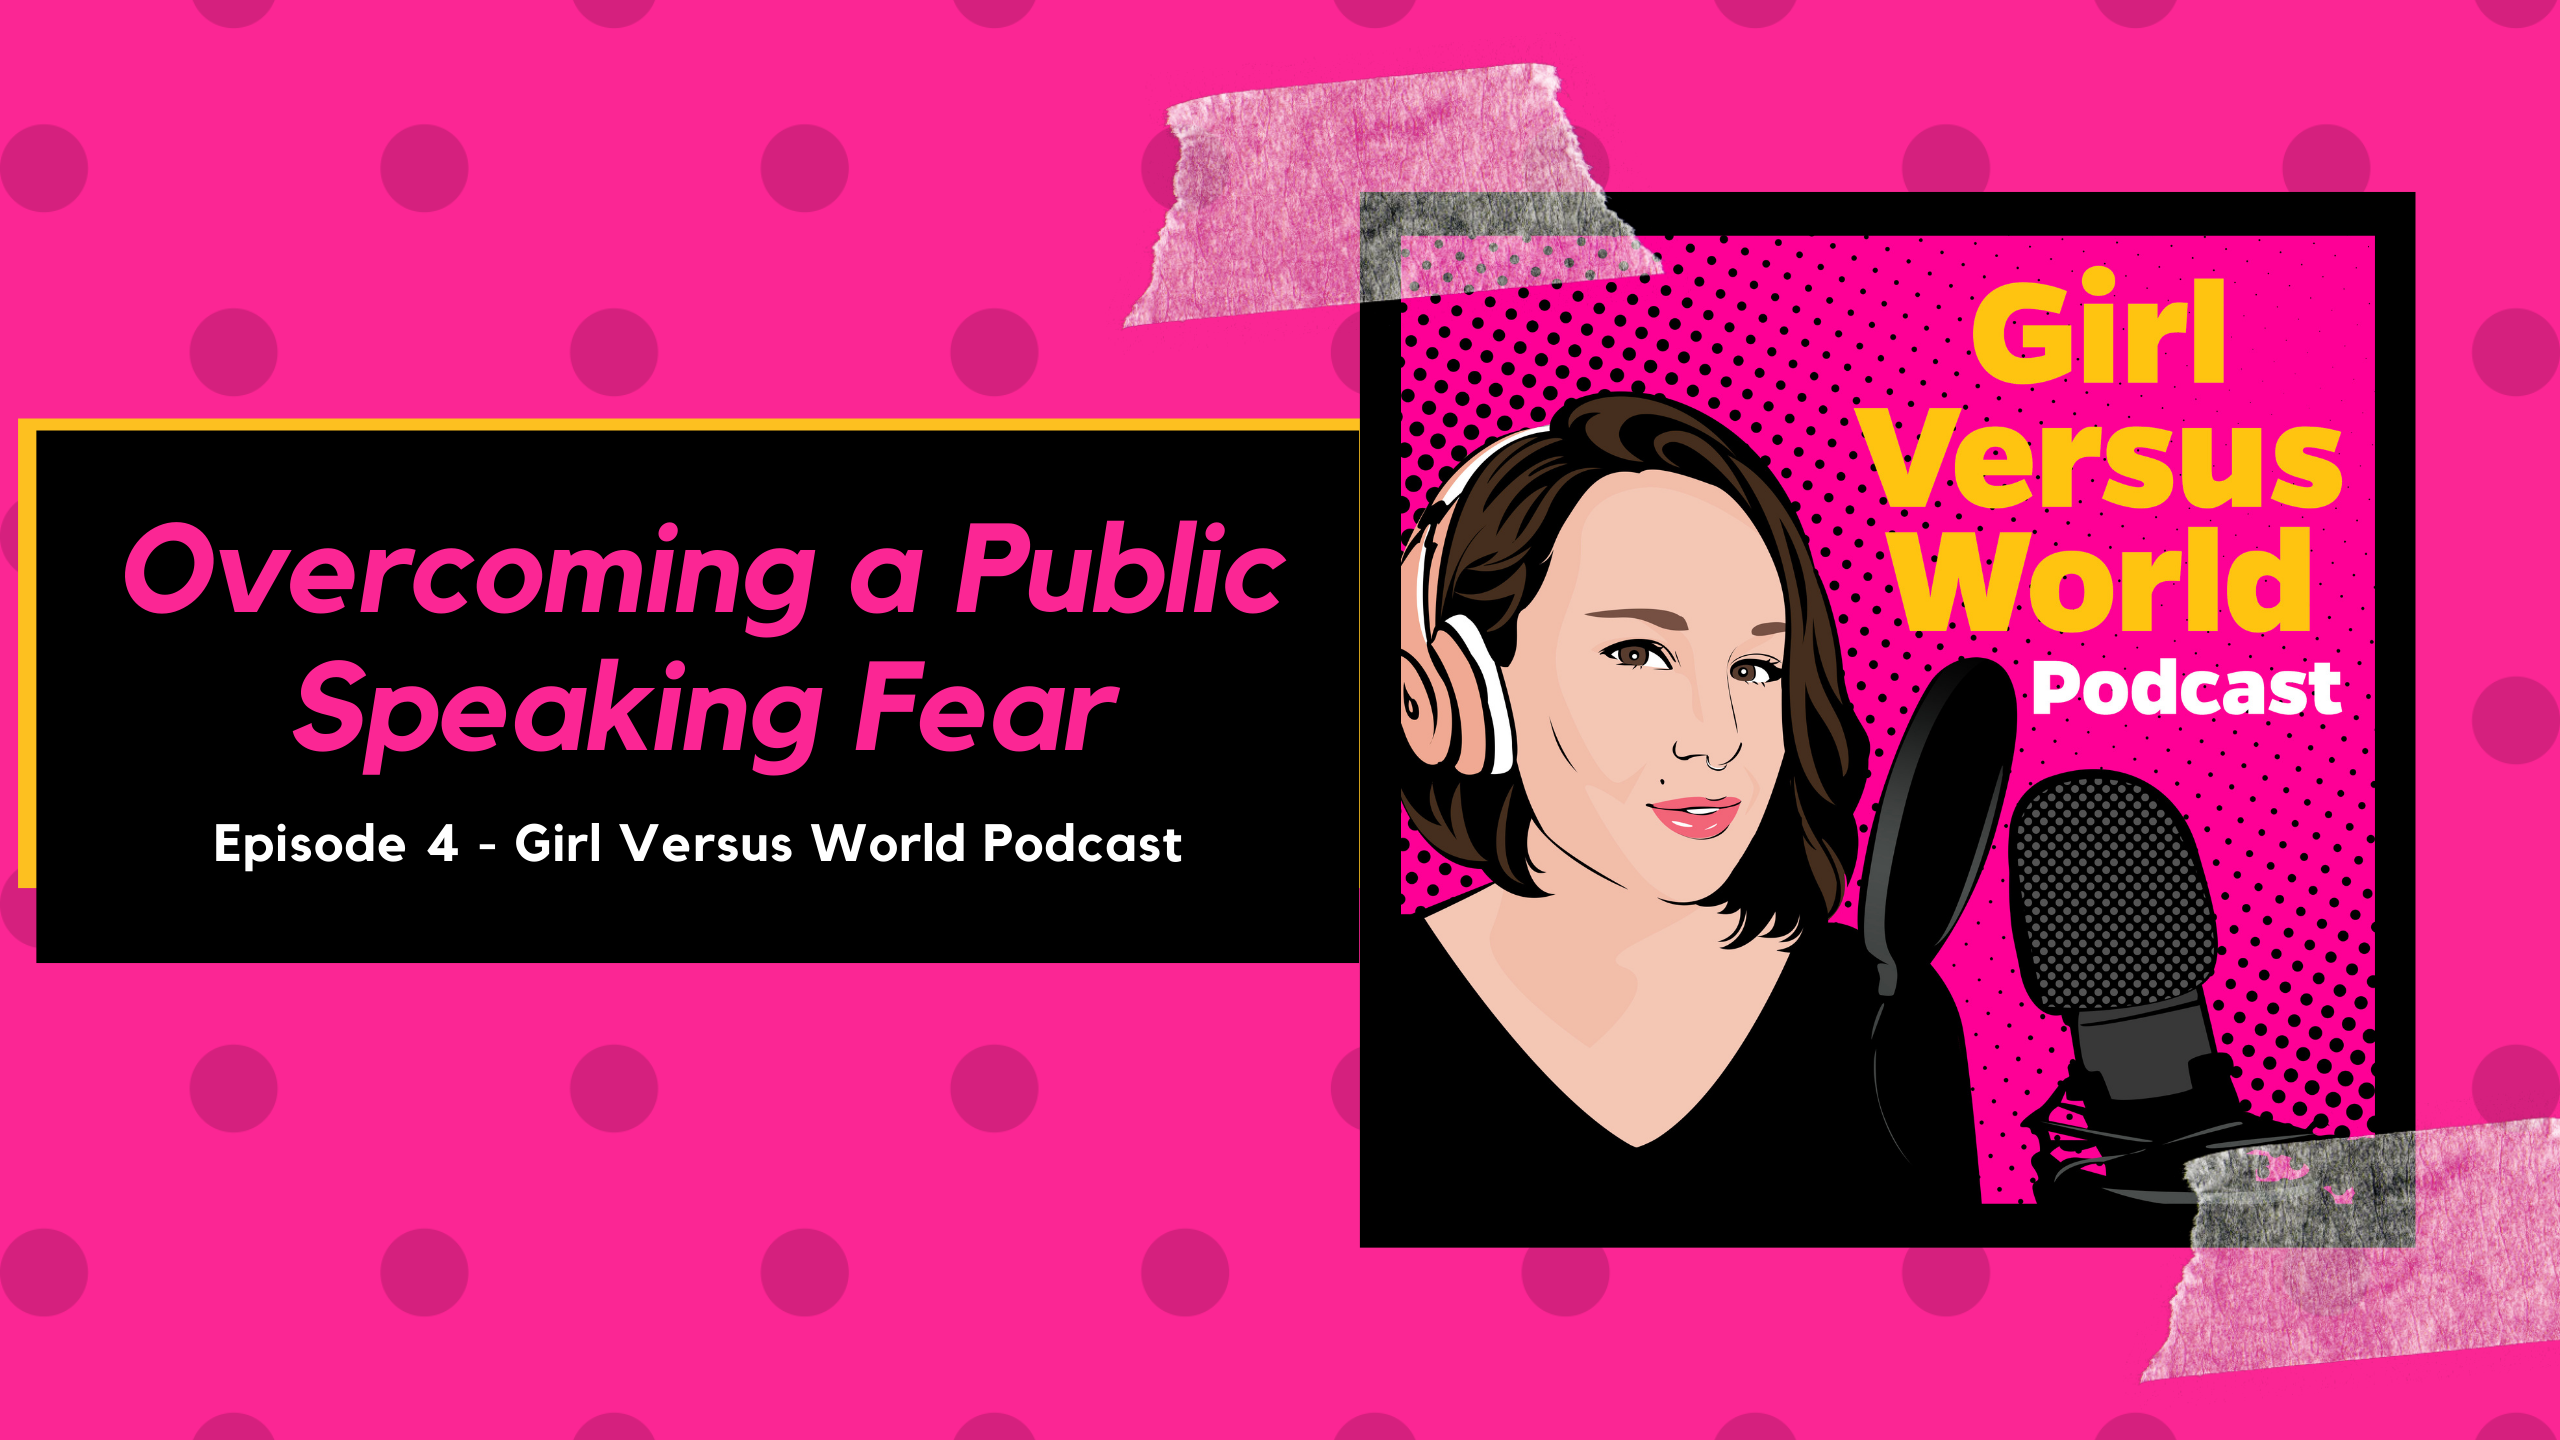 Podcast Episode 4: Overcoming a Public Speaking Fear